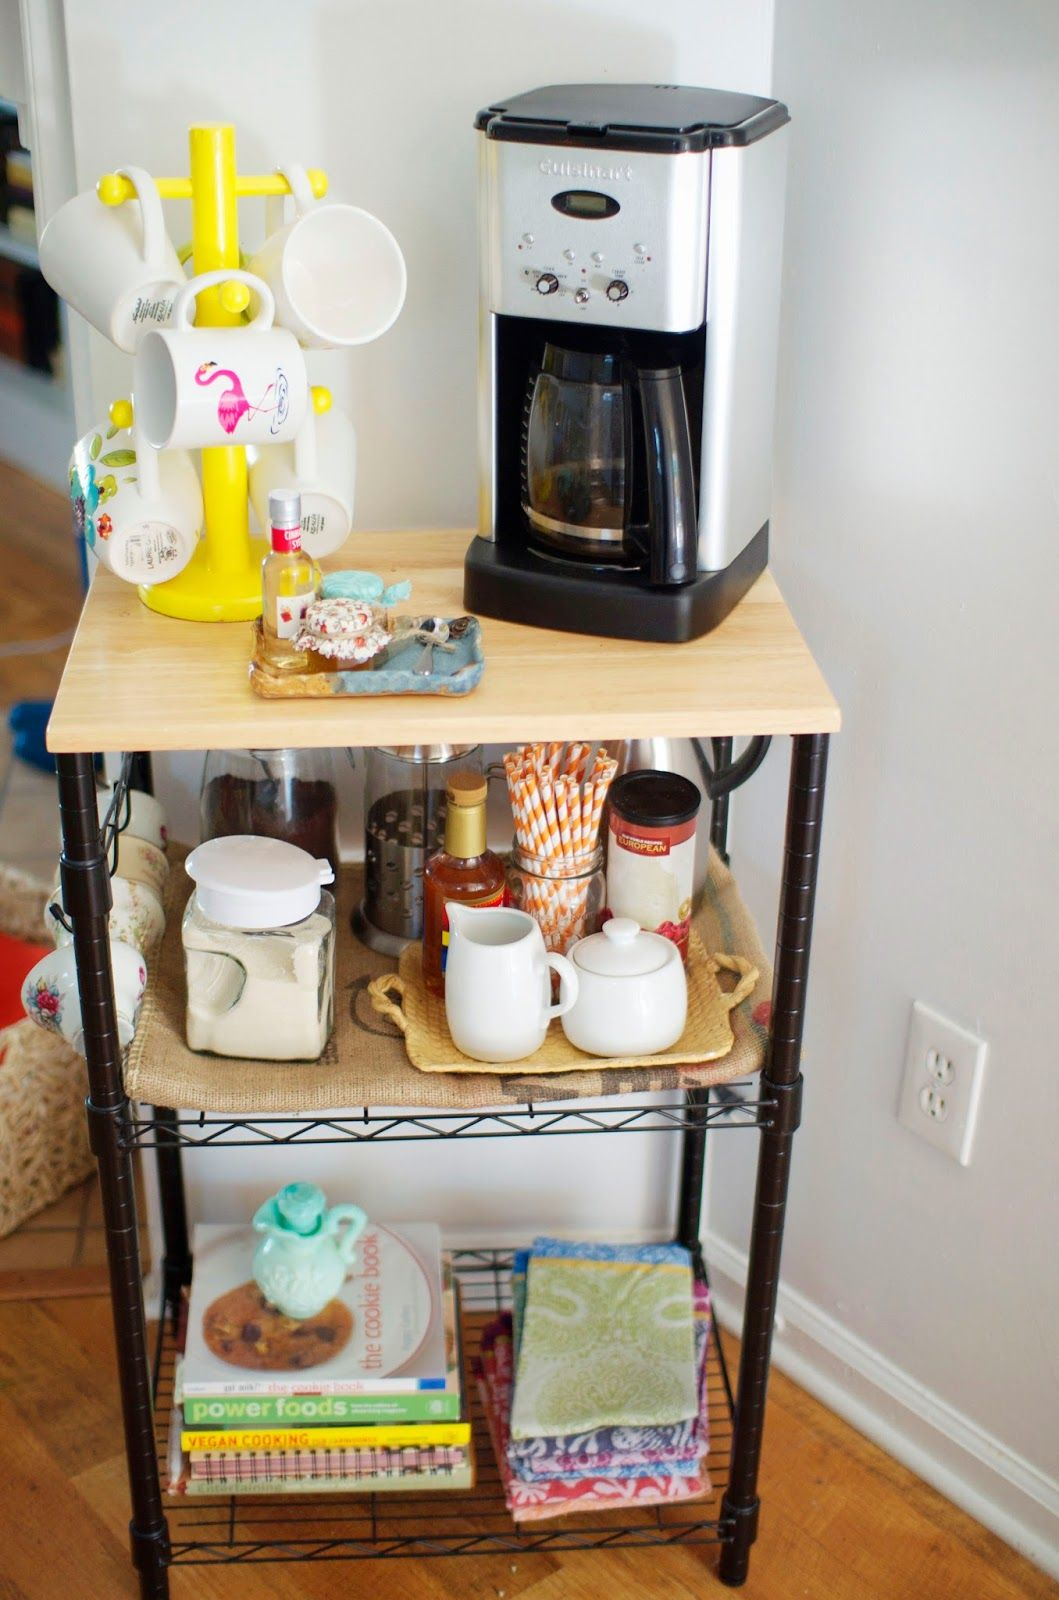 Our Little Coffee Station | Pinterest | Microwave cart, Coffee and Dorm